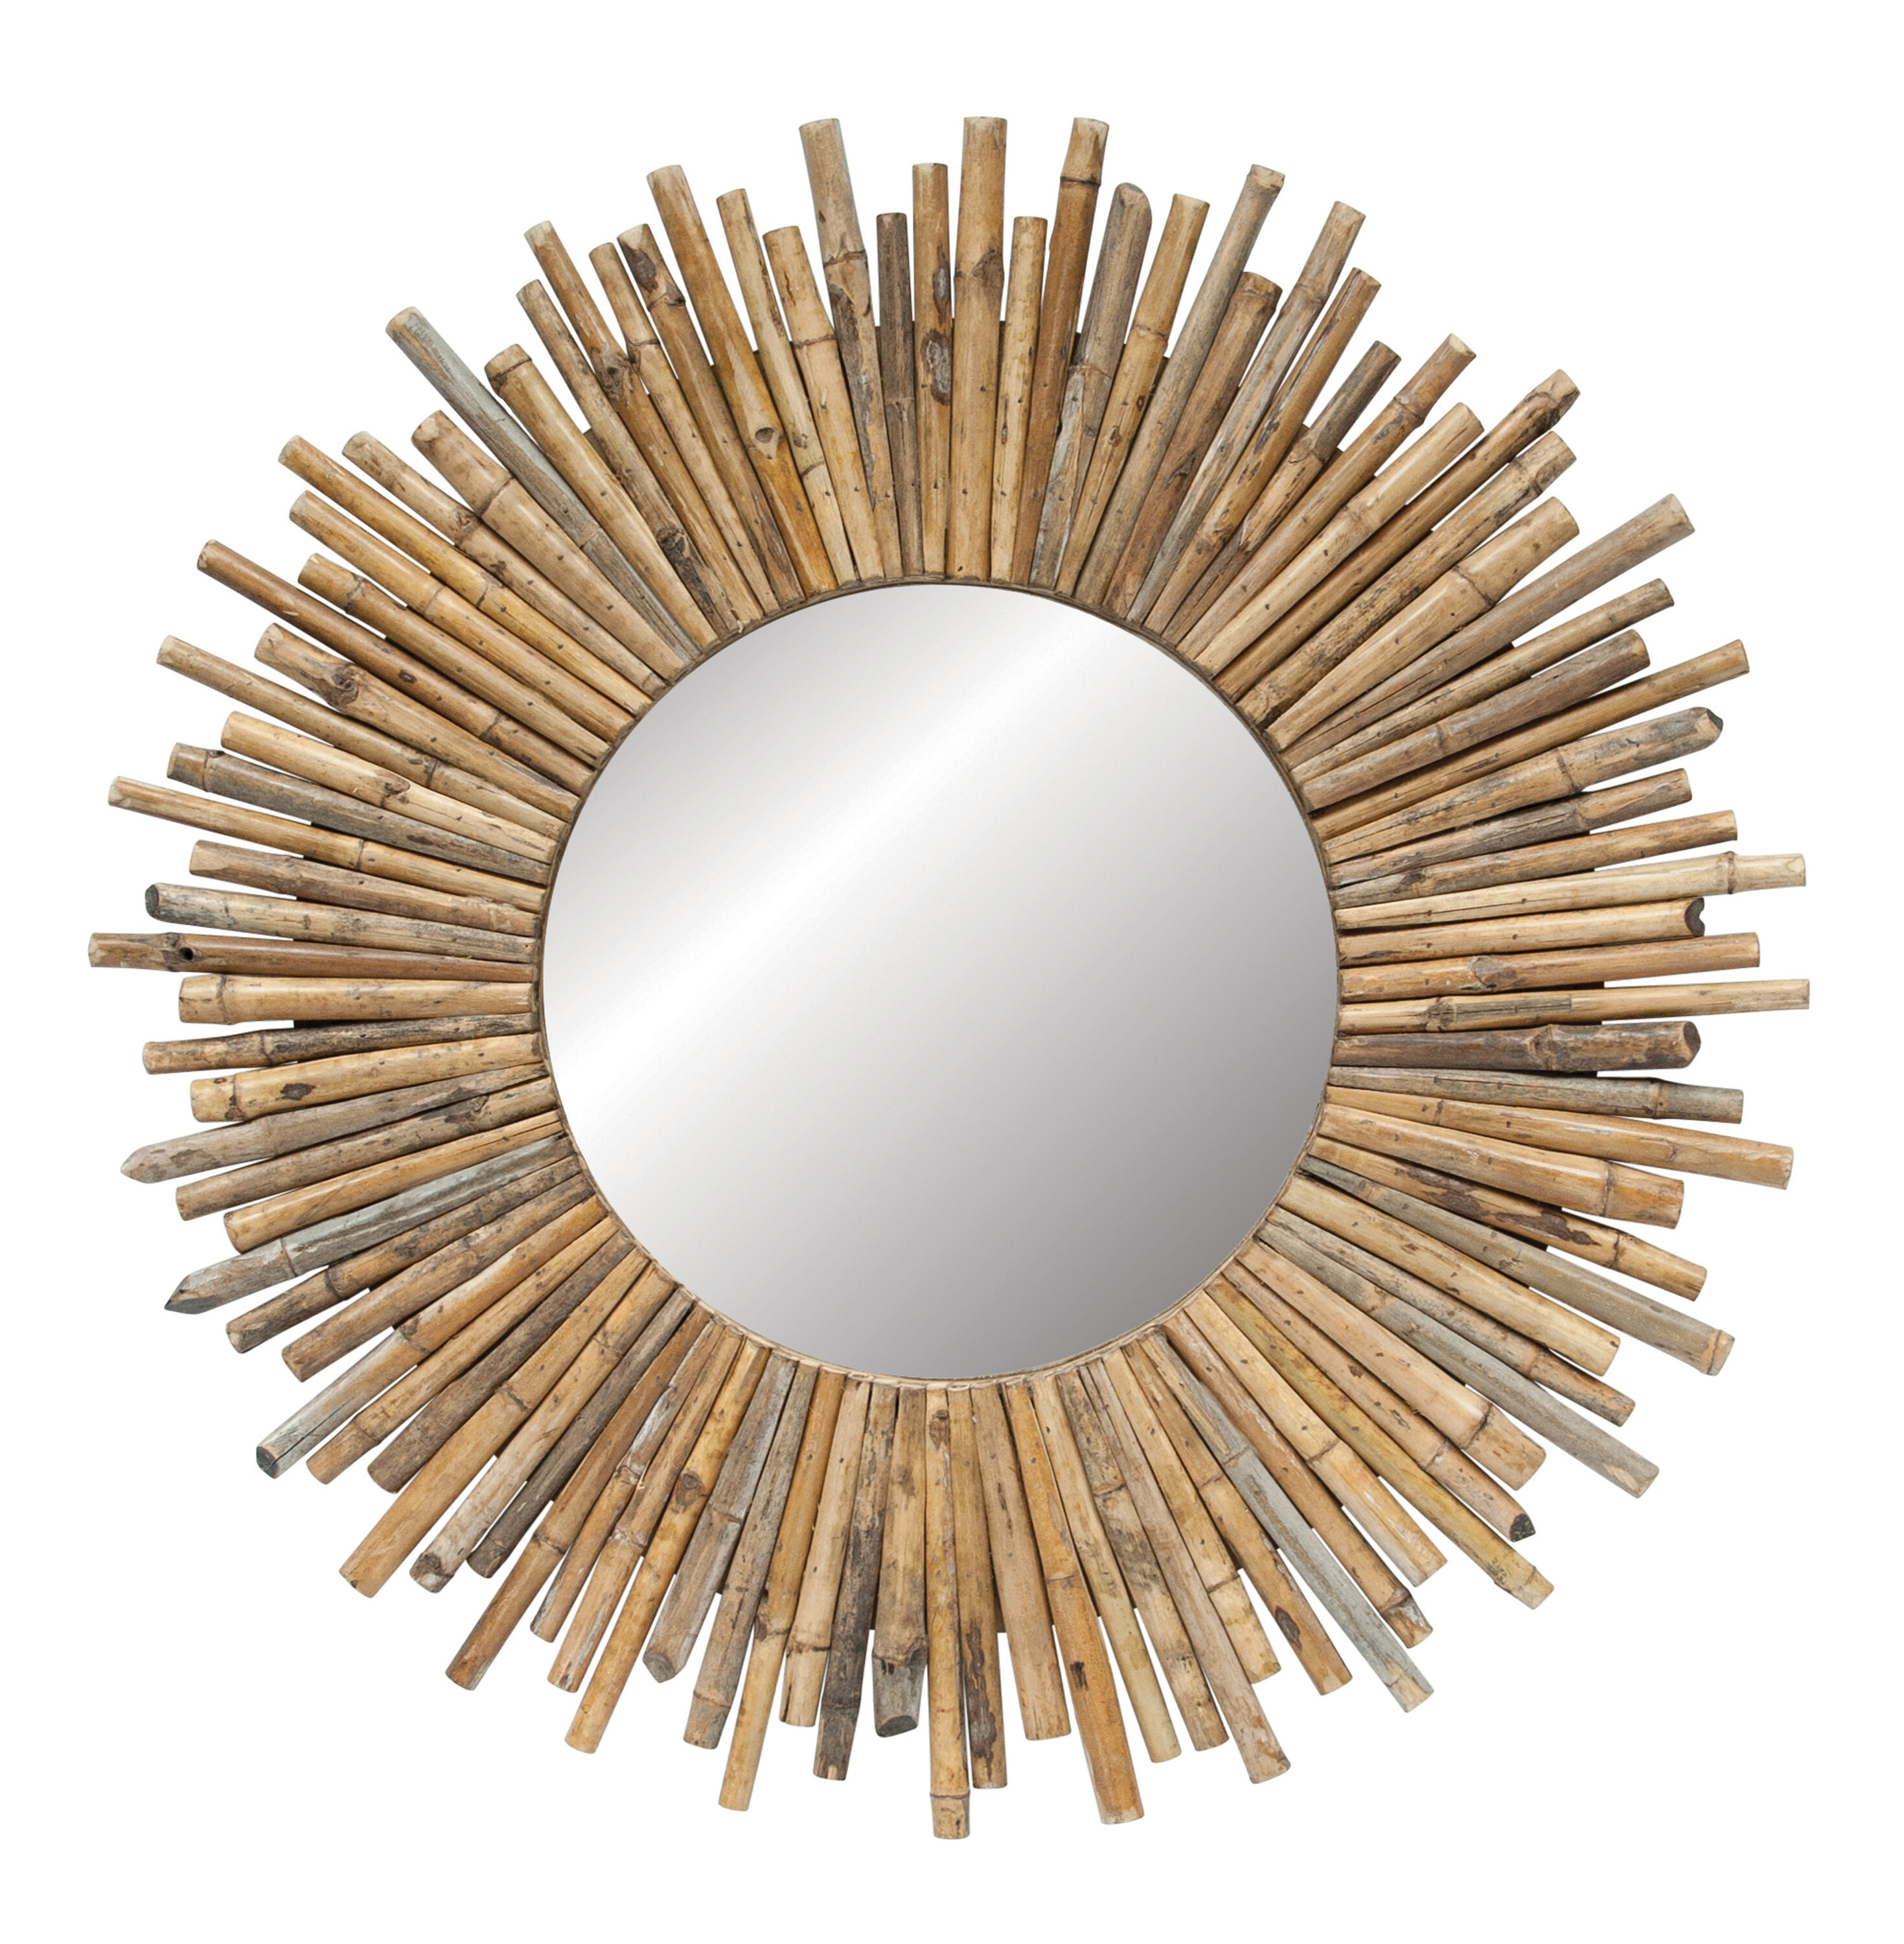 Madilynn Eclectic Accent Mirror | Joss & Main Inside Perillo Burst Wood Accent Mirrors (View 4 of 20)